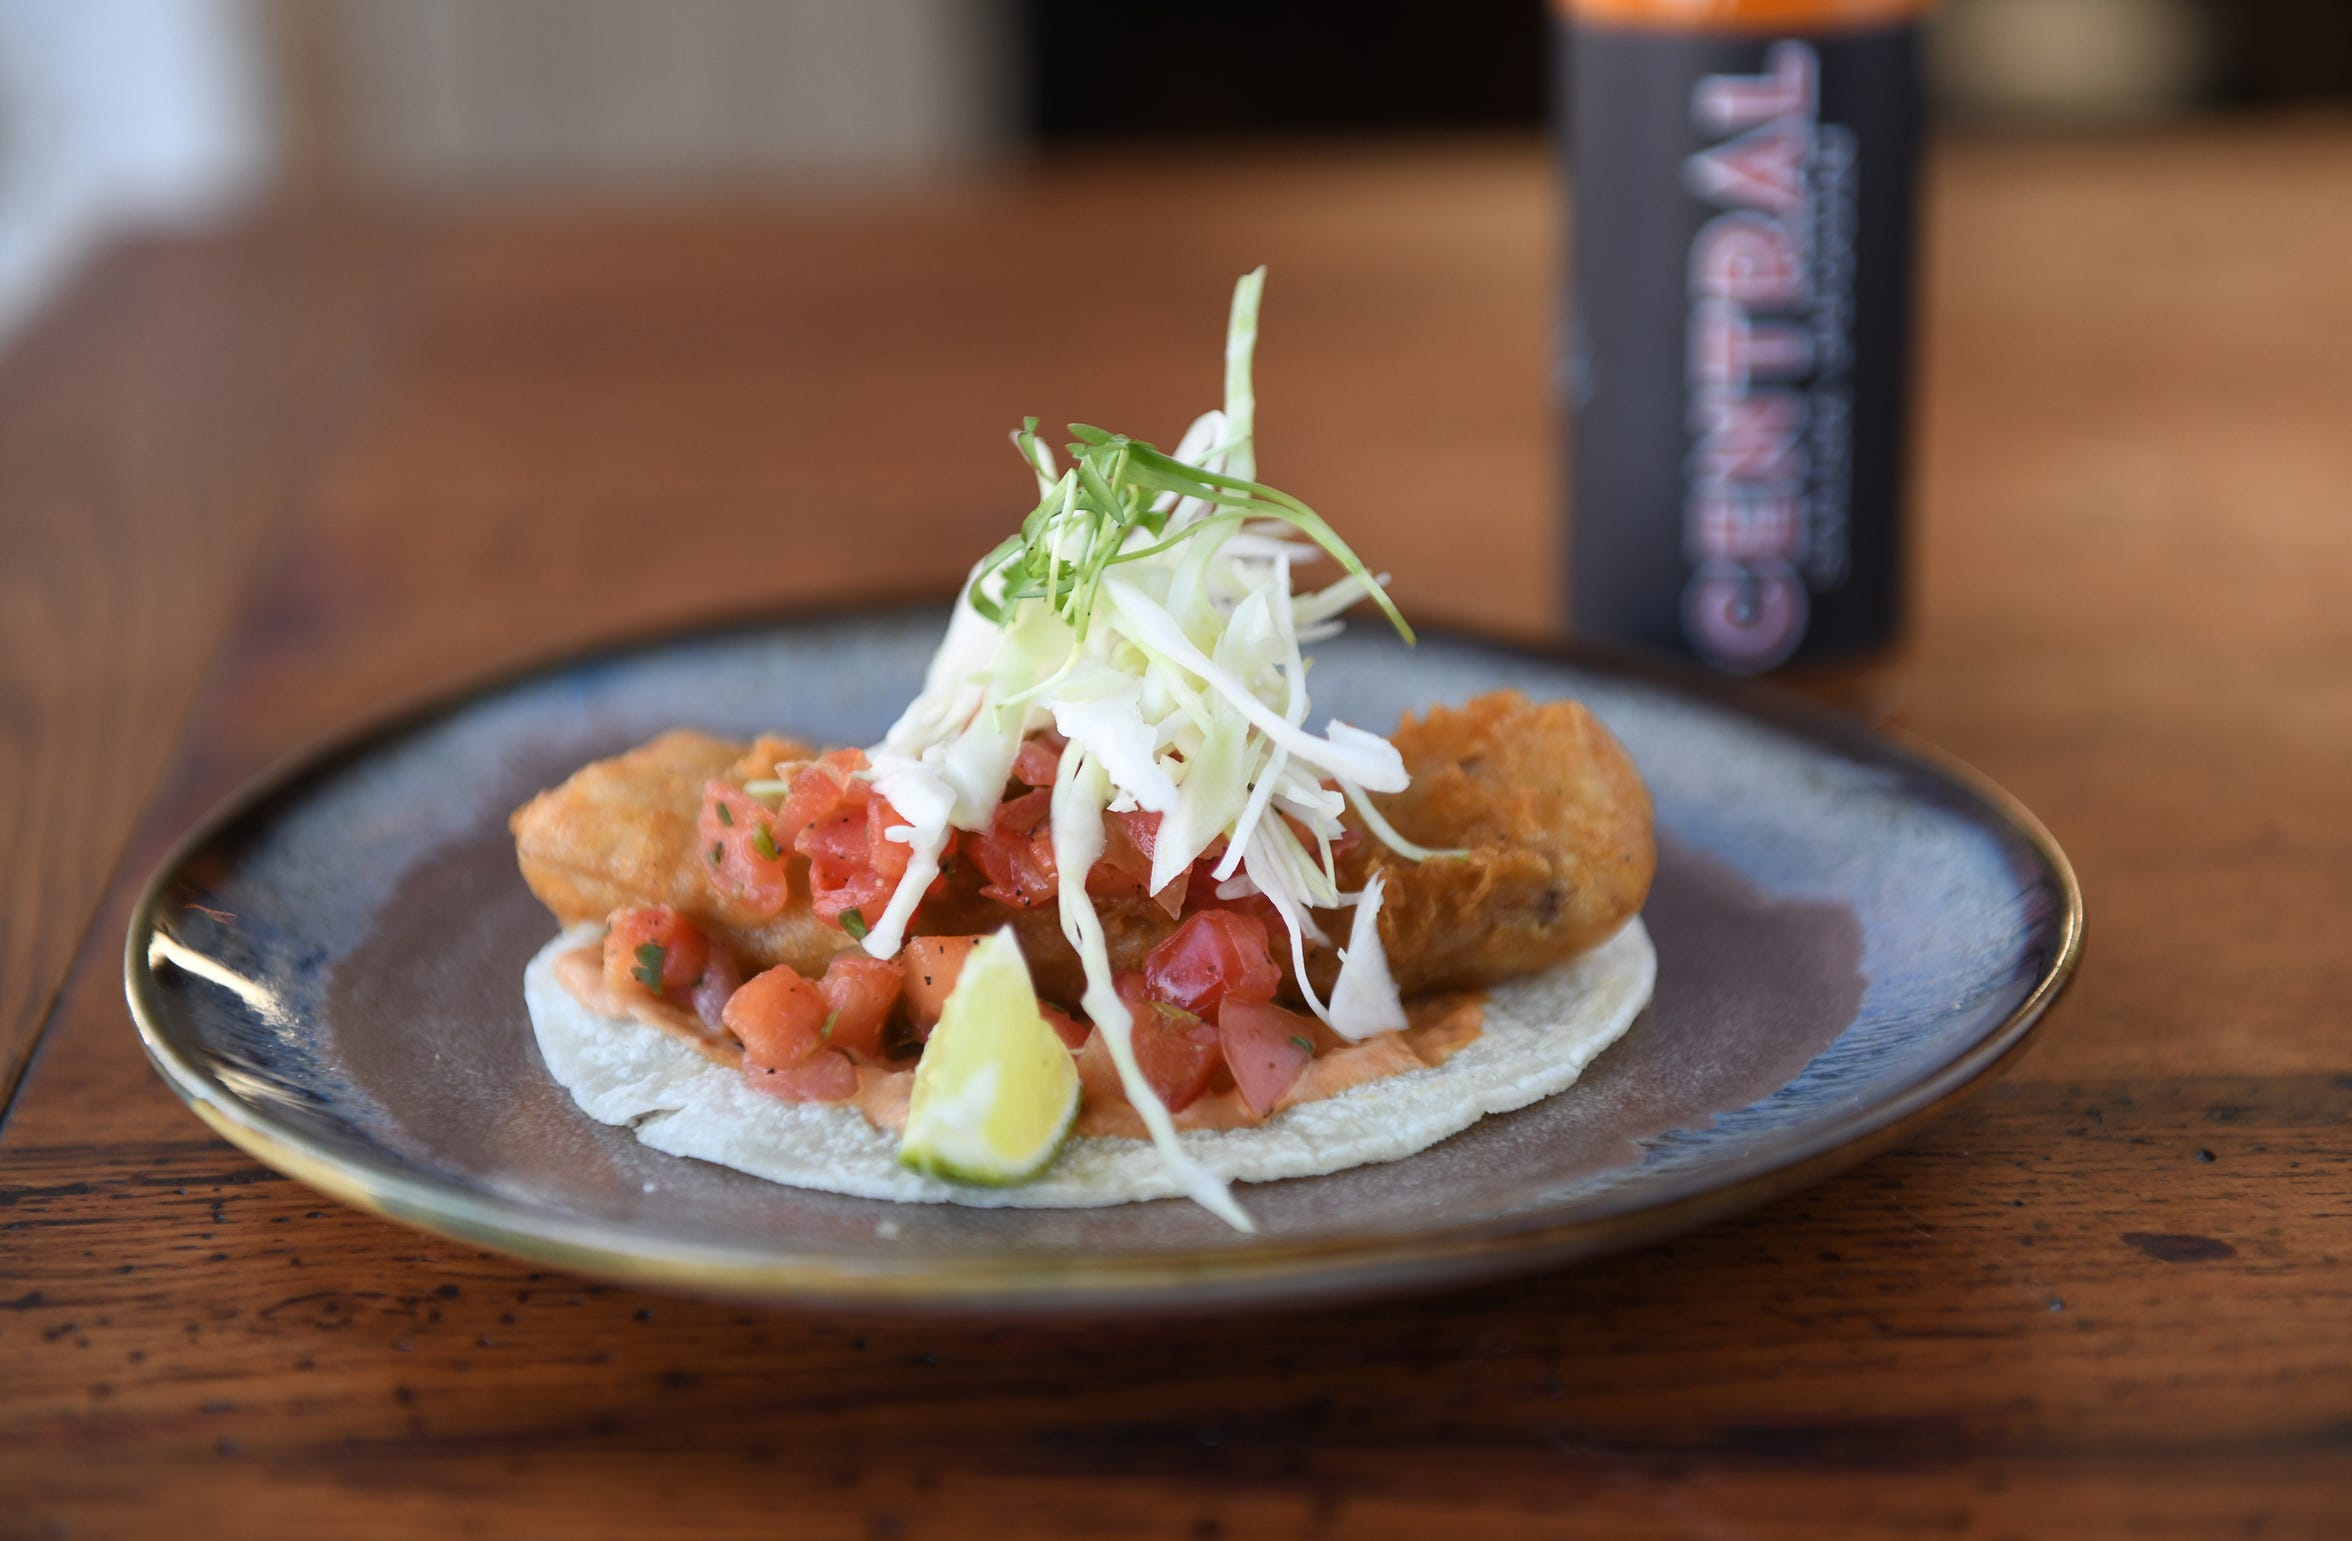 A Crispy Fish Taco is among the many options for seafood lovers at Central Taco and Tequila.